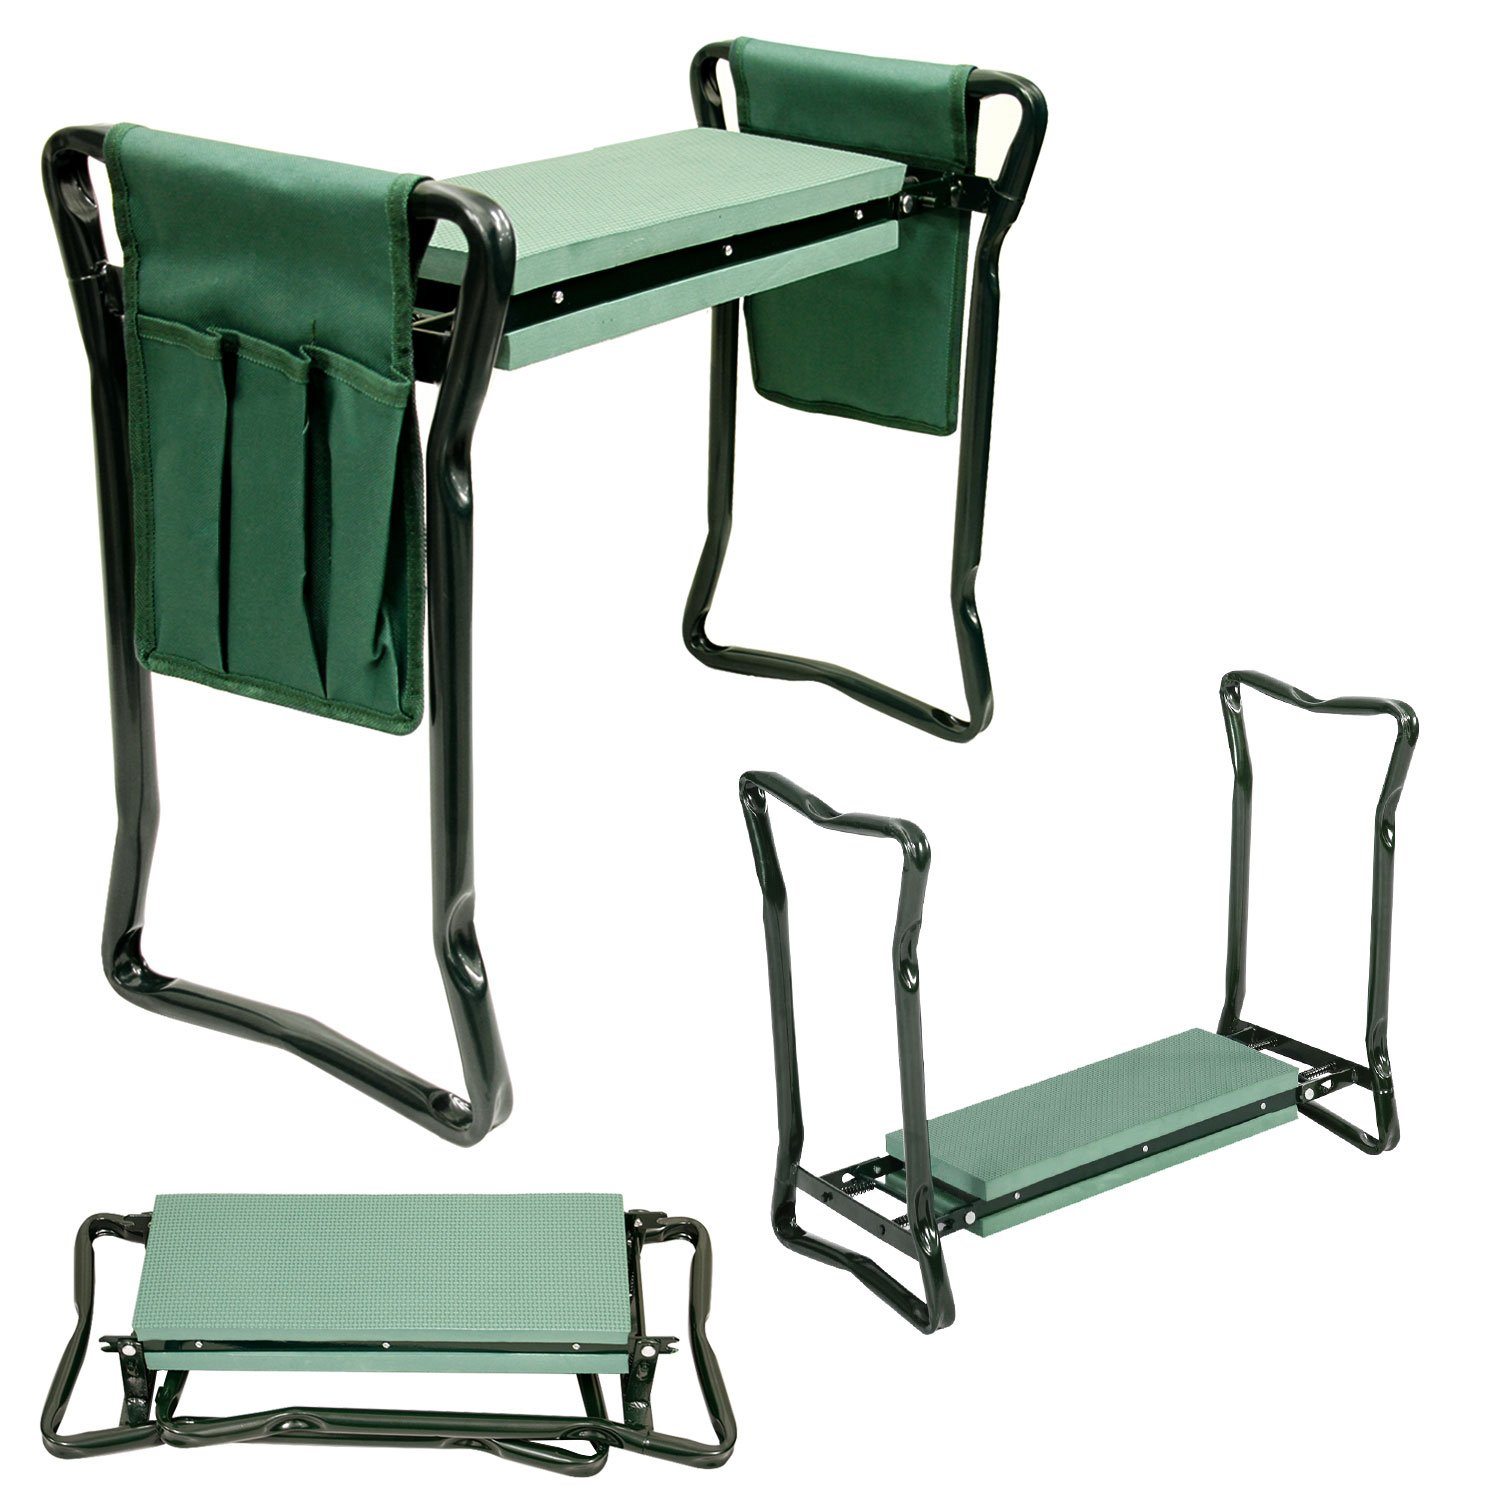 U.S. Garden Supply Foldable Garden Kneeler and Seat with 2 Tool Pouches - Soft EVA Foam Knee Pad Cushion - Portable Folding Stool Bench Chair by U.S. Garden Supply